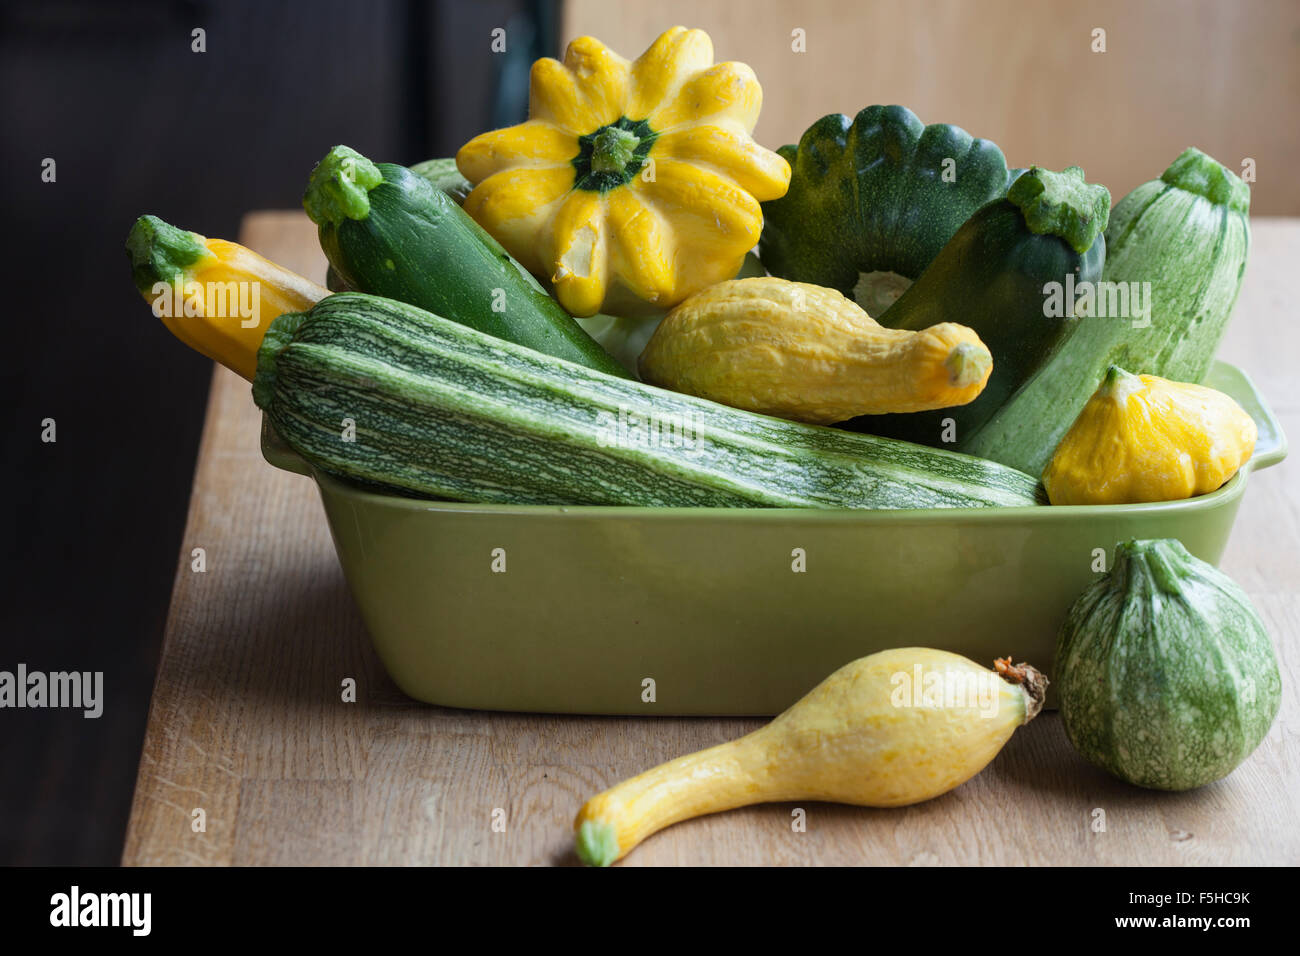 horizontal container has various summer squash - Stock Image